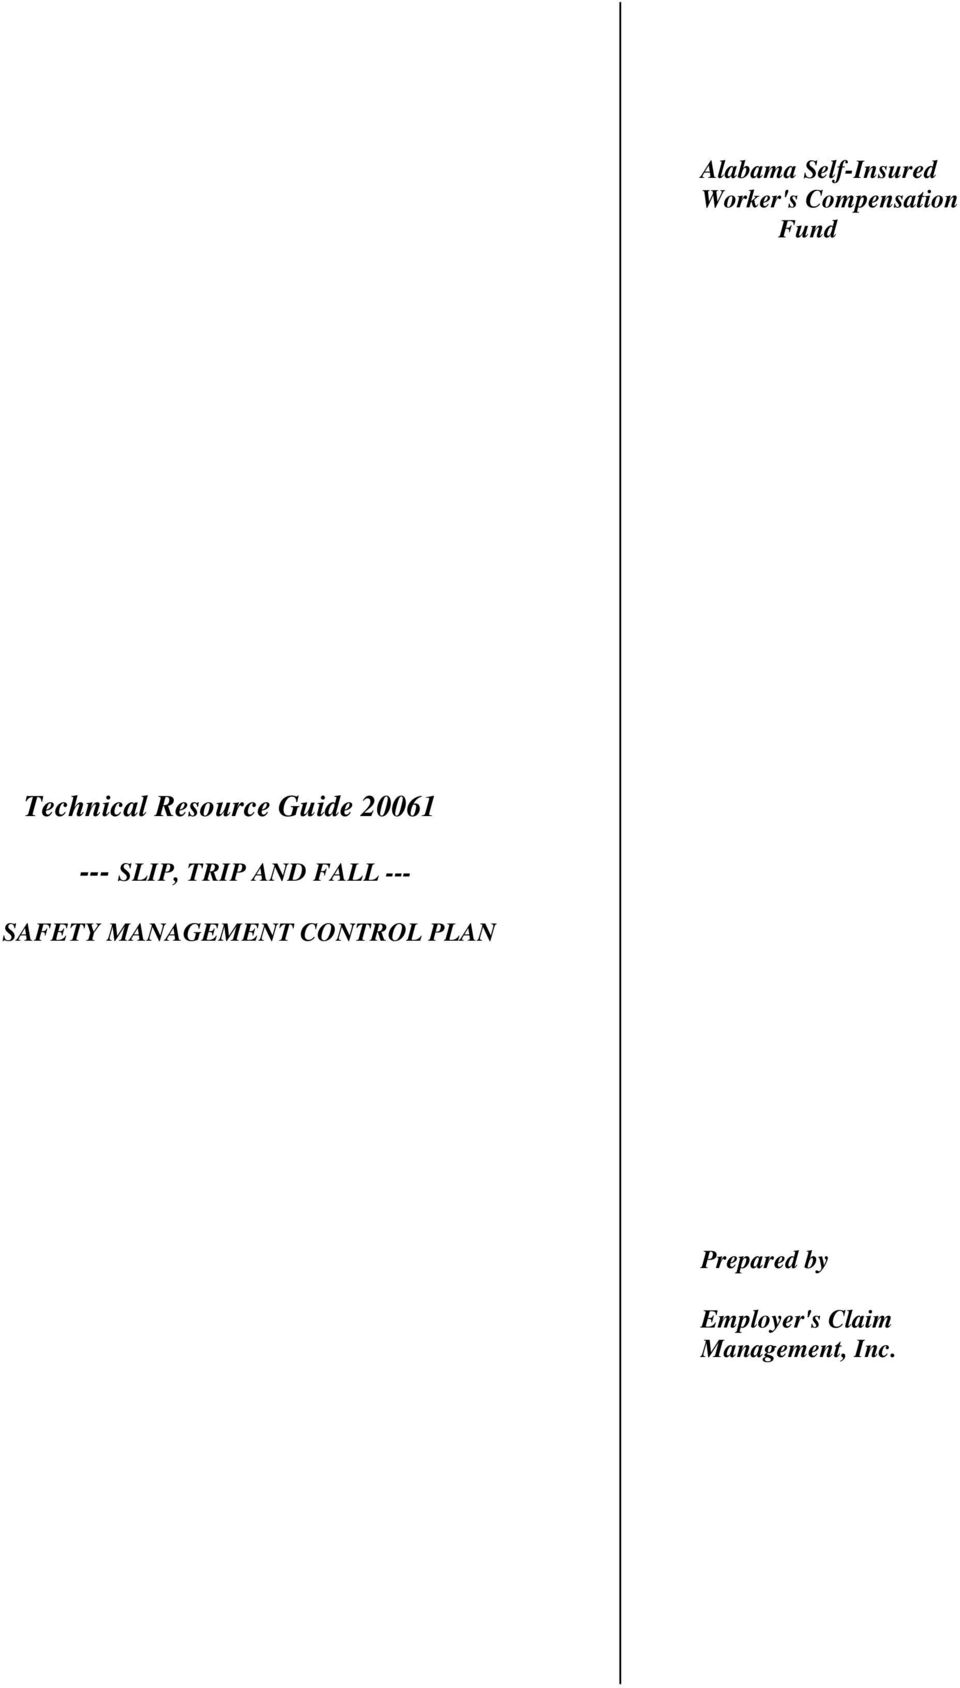 TRIP AND FALL --- SAFETY MANAGEMENT CONTROL